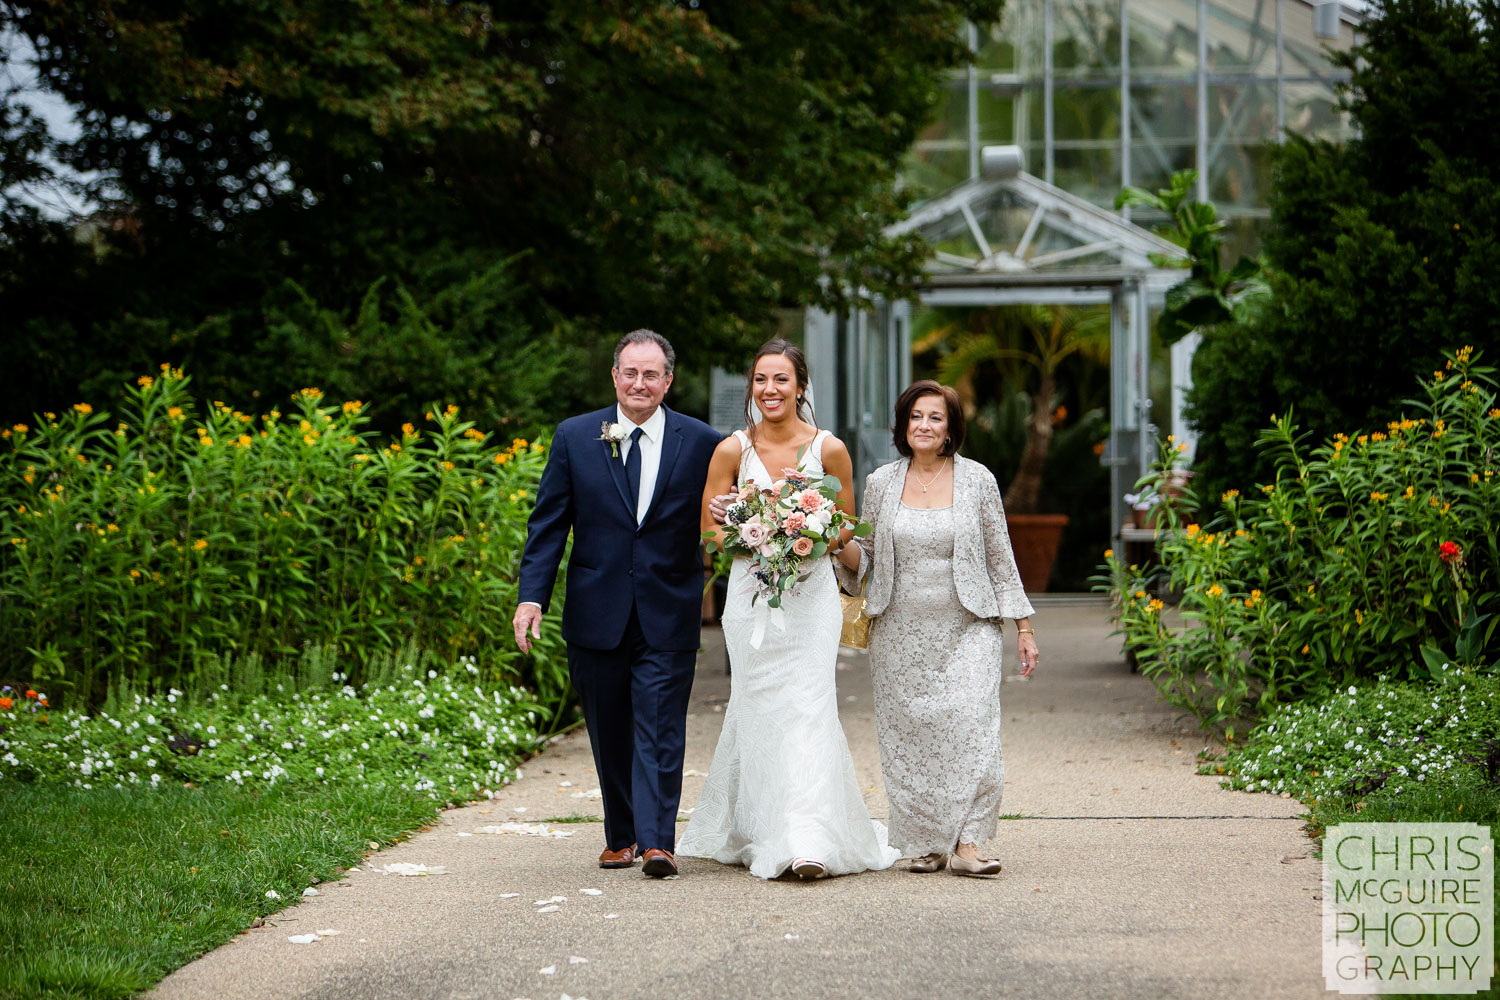 Bride walks down aisle with parents at Luthy